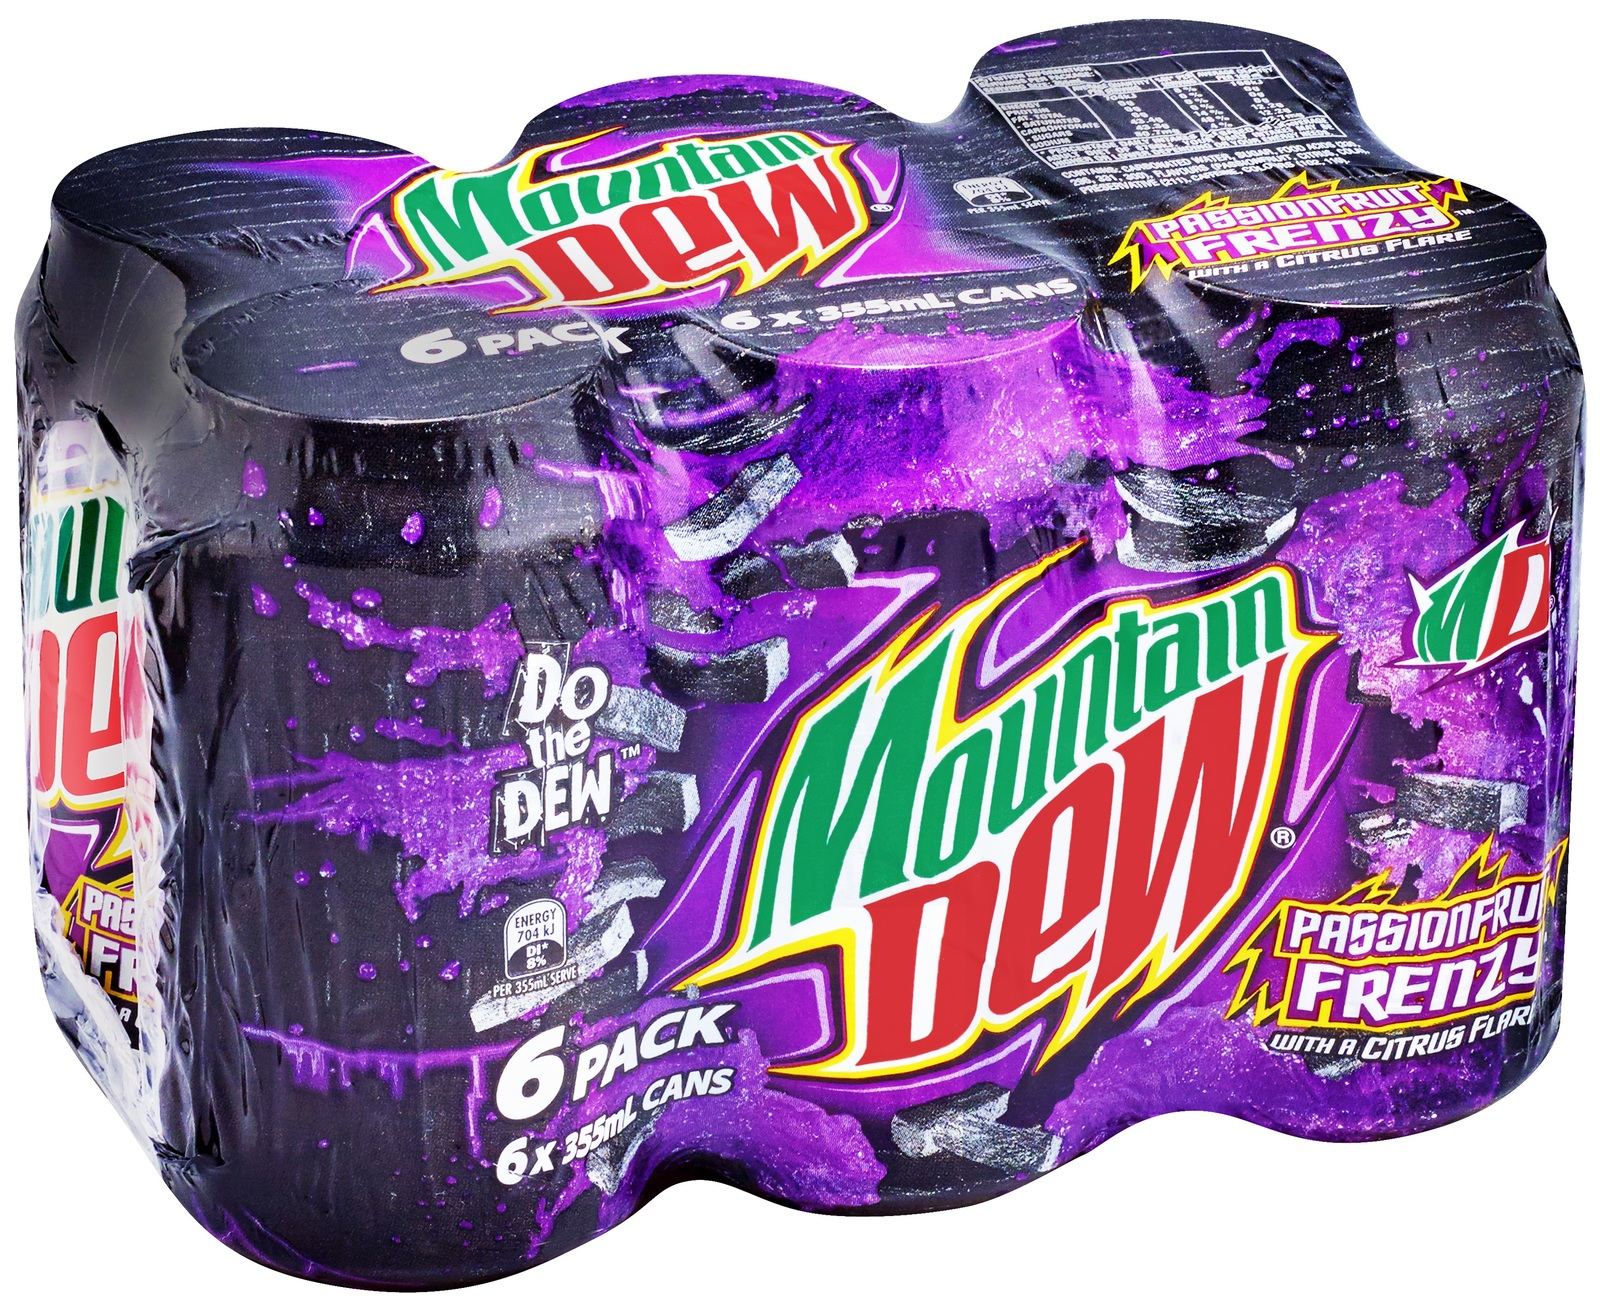 Mountain Dew Passionfruit Cans 355ml (24 Pack) image